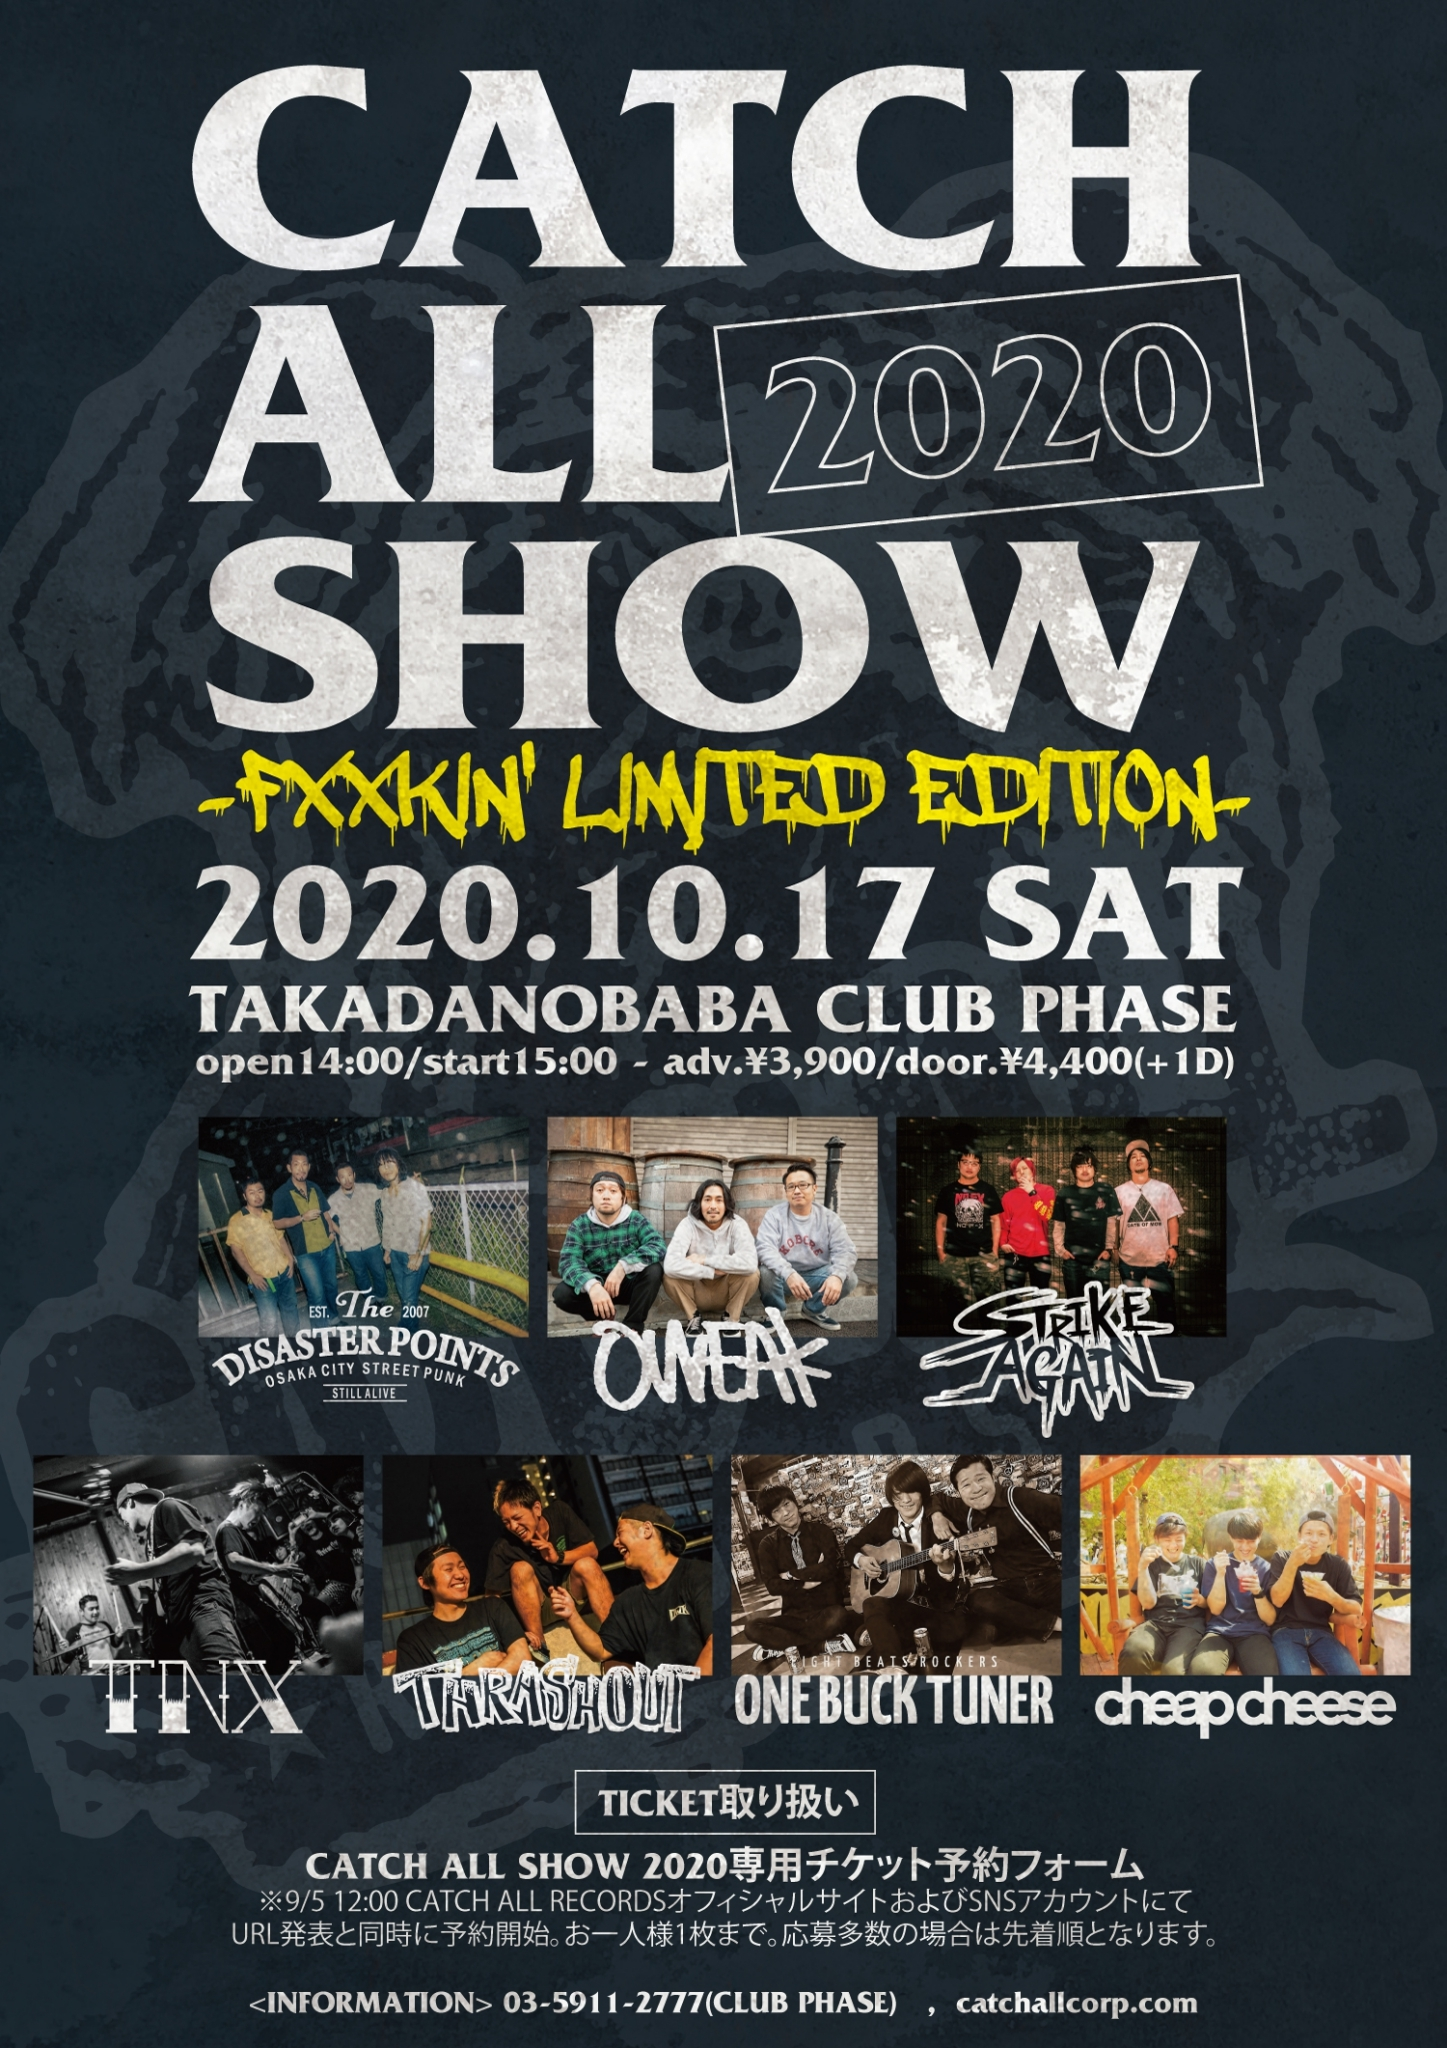 CATCH ALL SHOW 2020